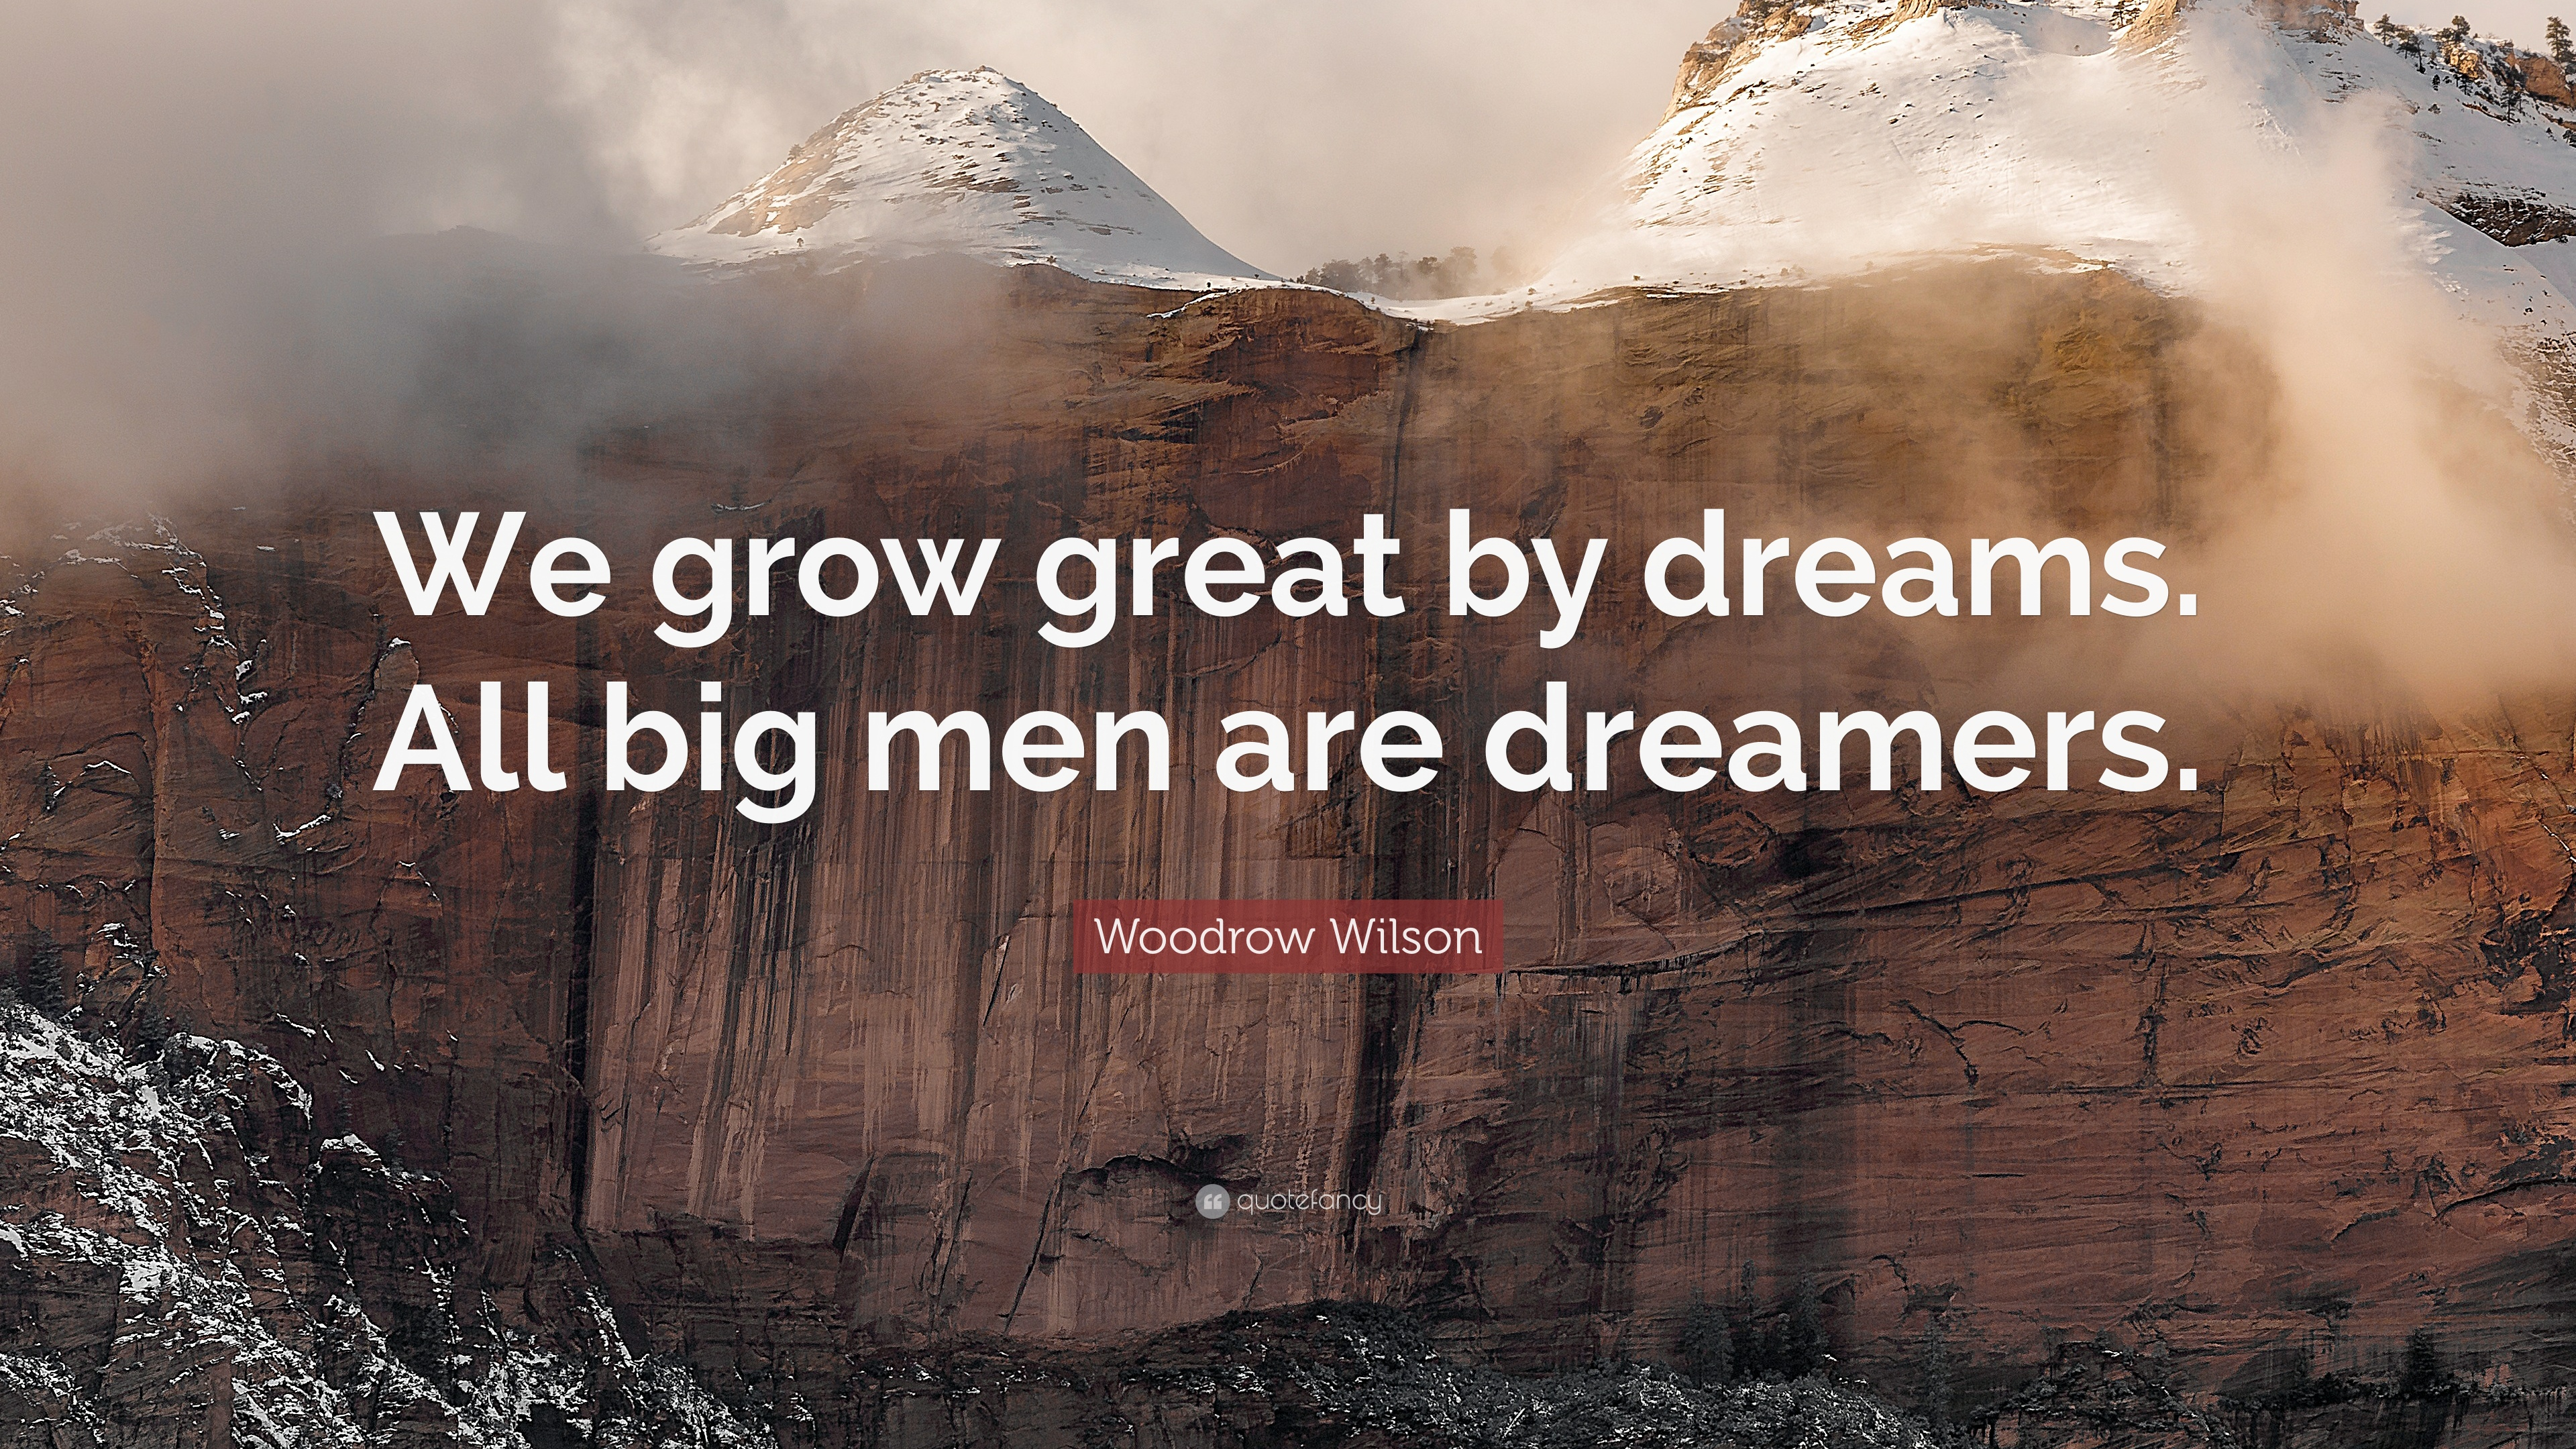 Woodrow Wilson Quotes | Woodrow Wilson Quote We Grow Great By Dreams All Big Men Are